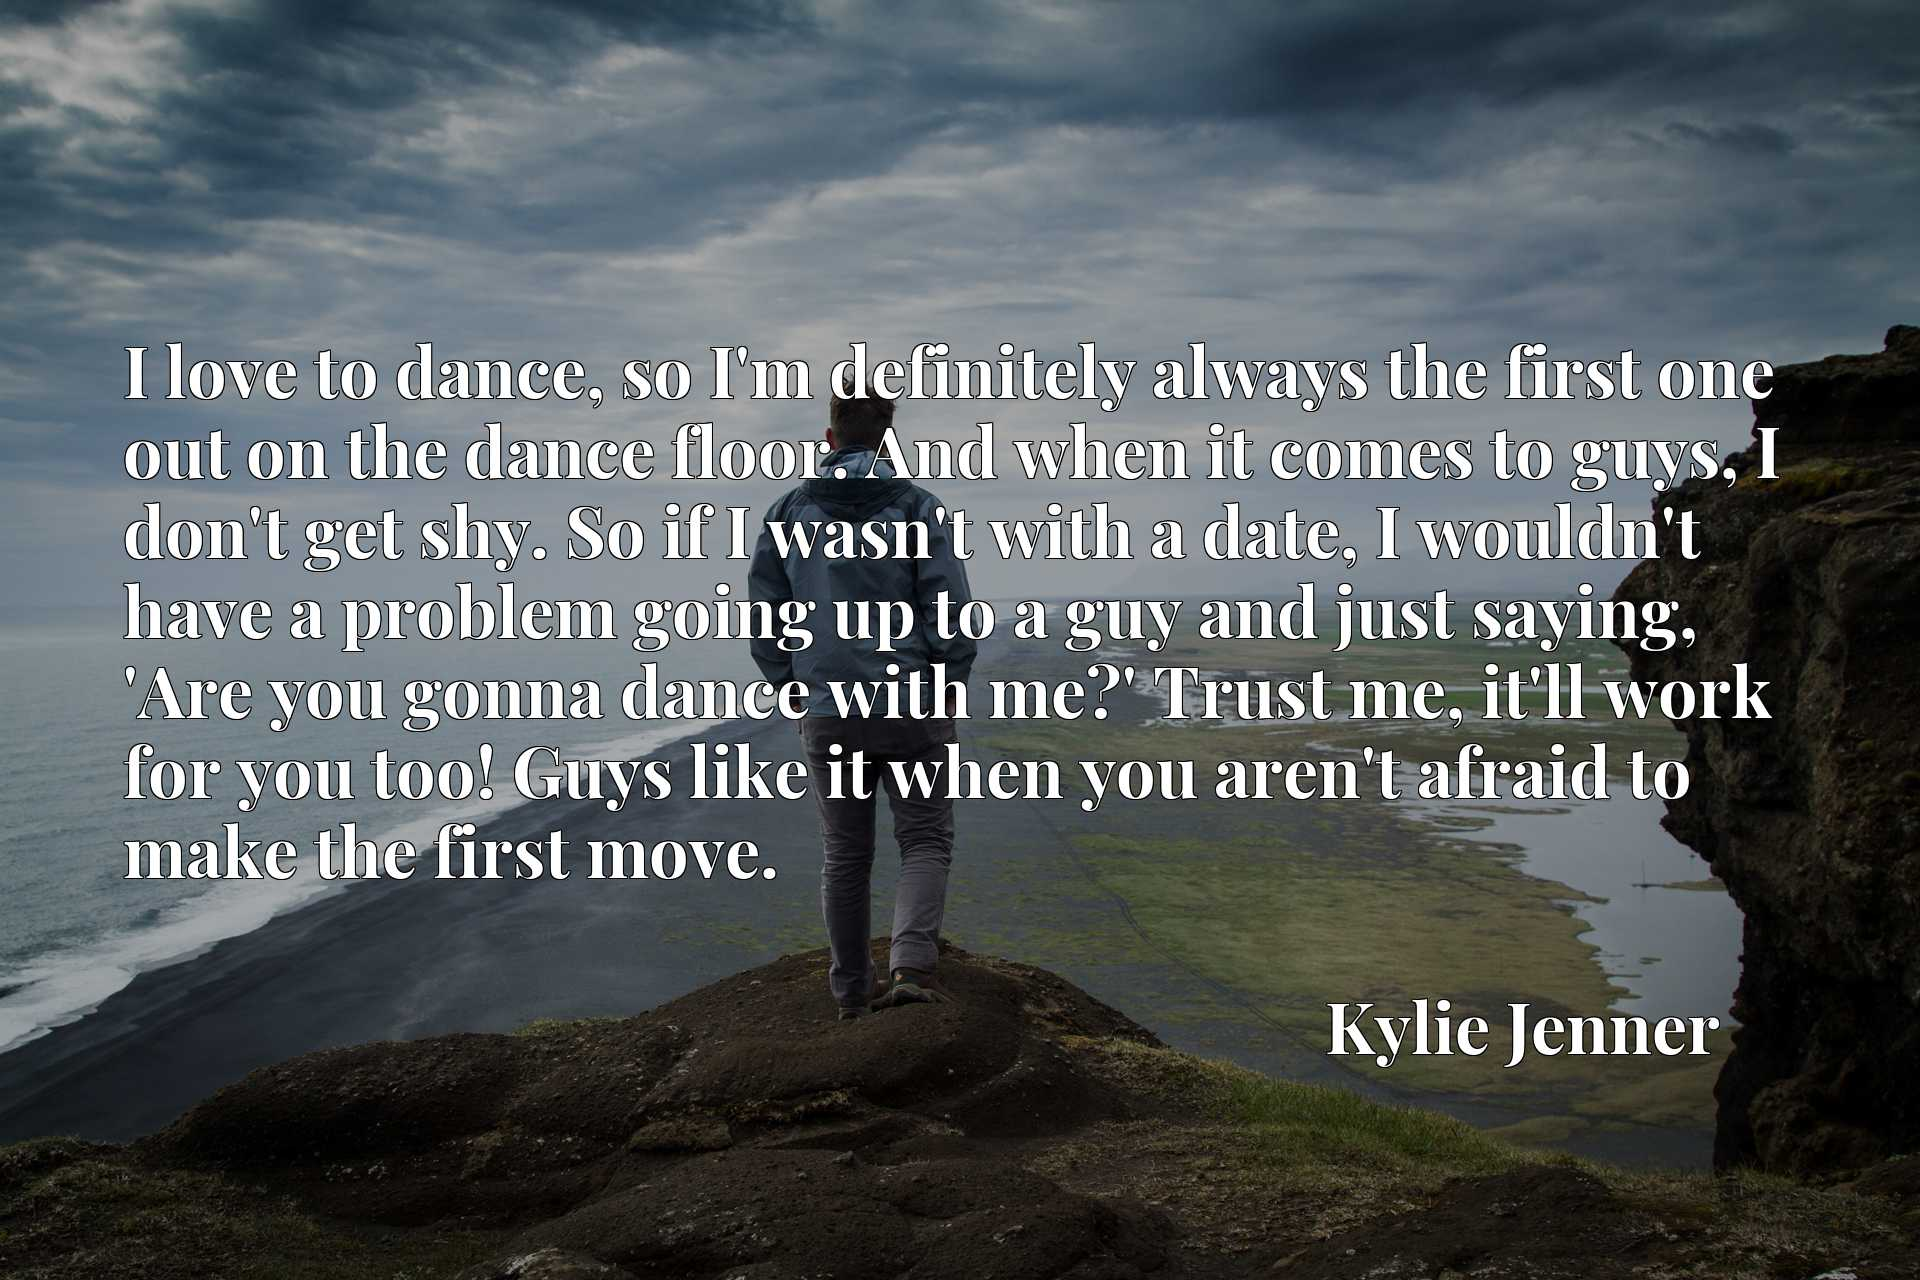 I love to dance, so I'm definitely always the first one out on the dance floor. And when it comes to guys, I don't get shy. So if I wasn't with a date, I wouldn't have a problem going up to a guy and just saying, 'Are you gonna dance with me?' Trust me, it'll work for you too! Guys like it when you aren't afraid to make the first move.